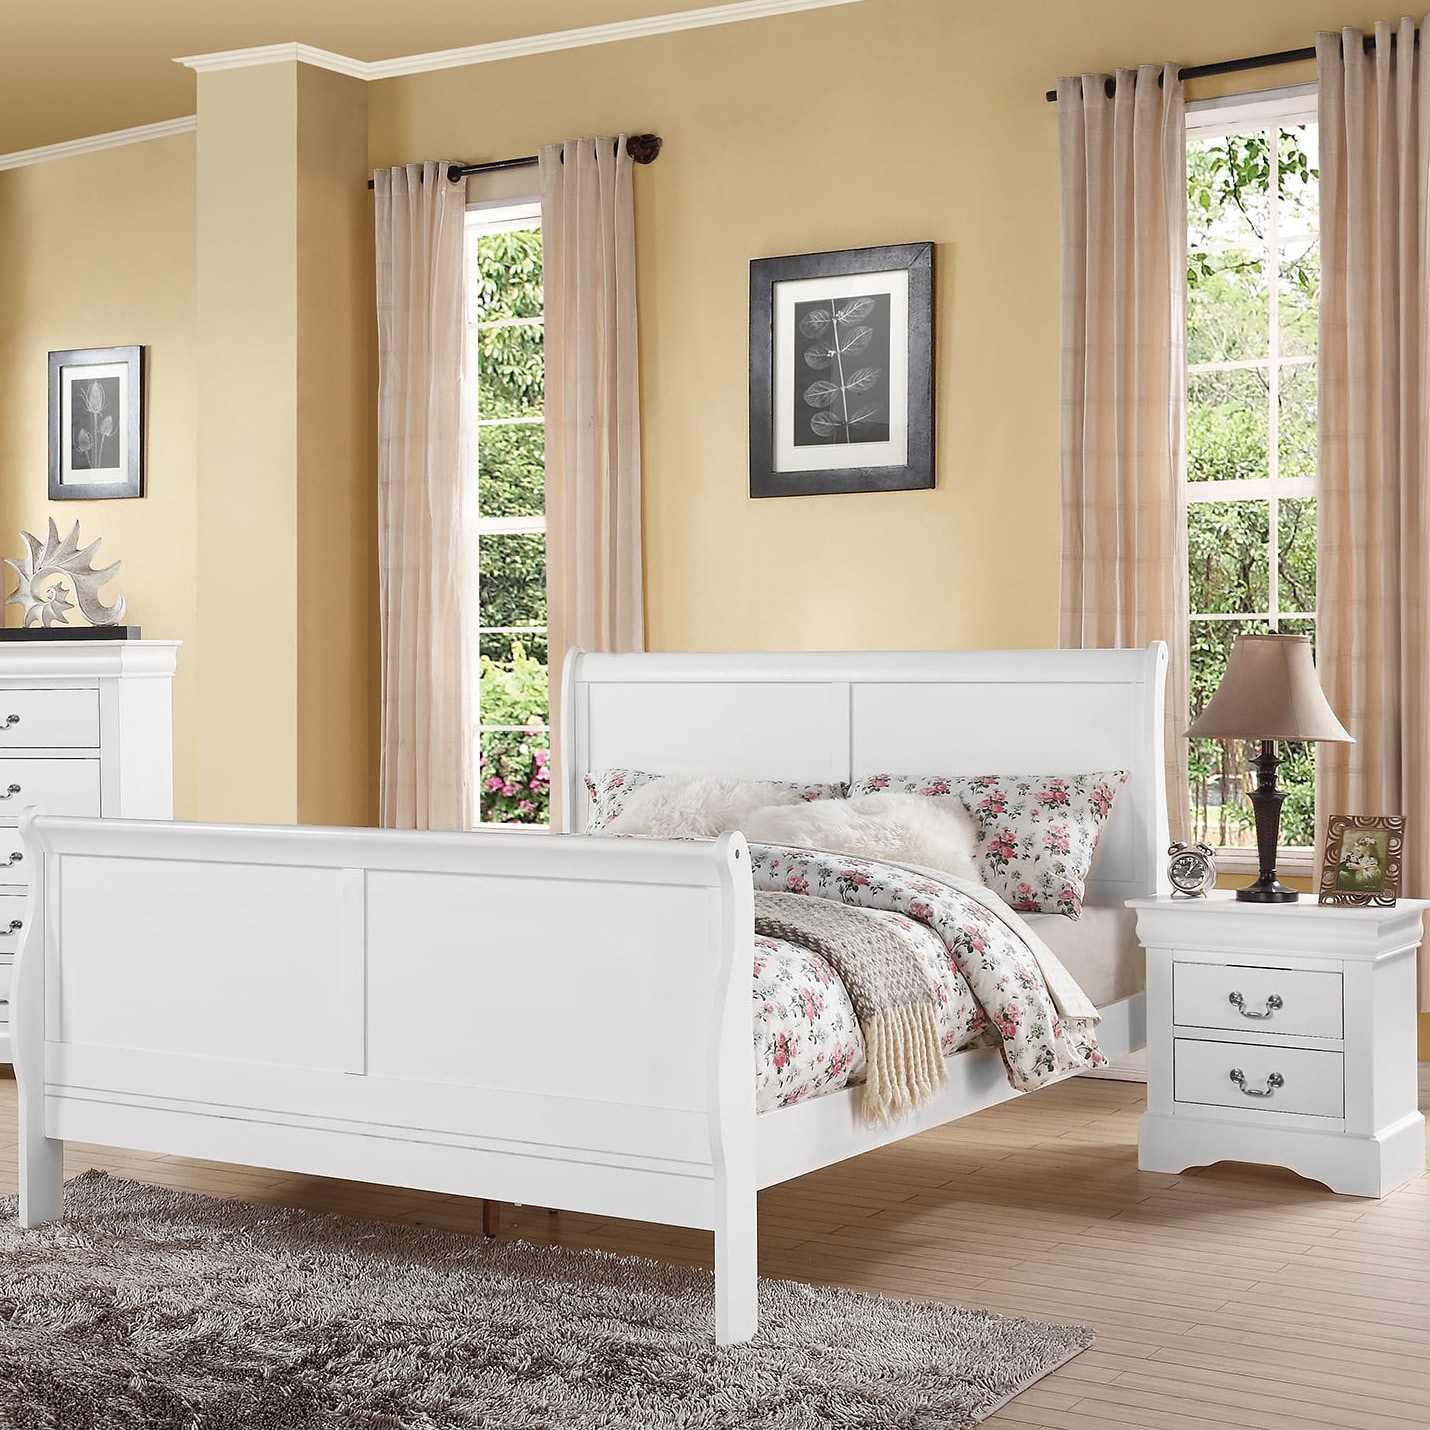 ACME Louis Philippe III White Wooden Bed (California King)